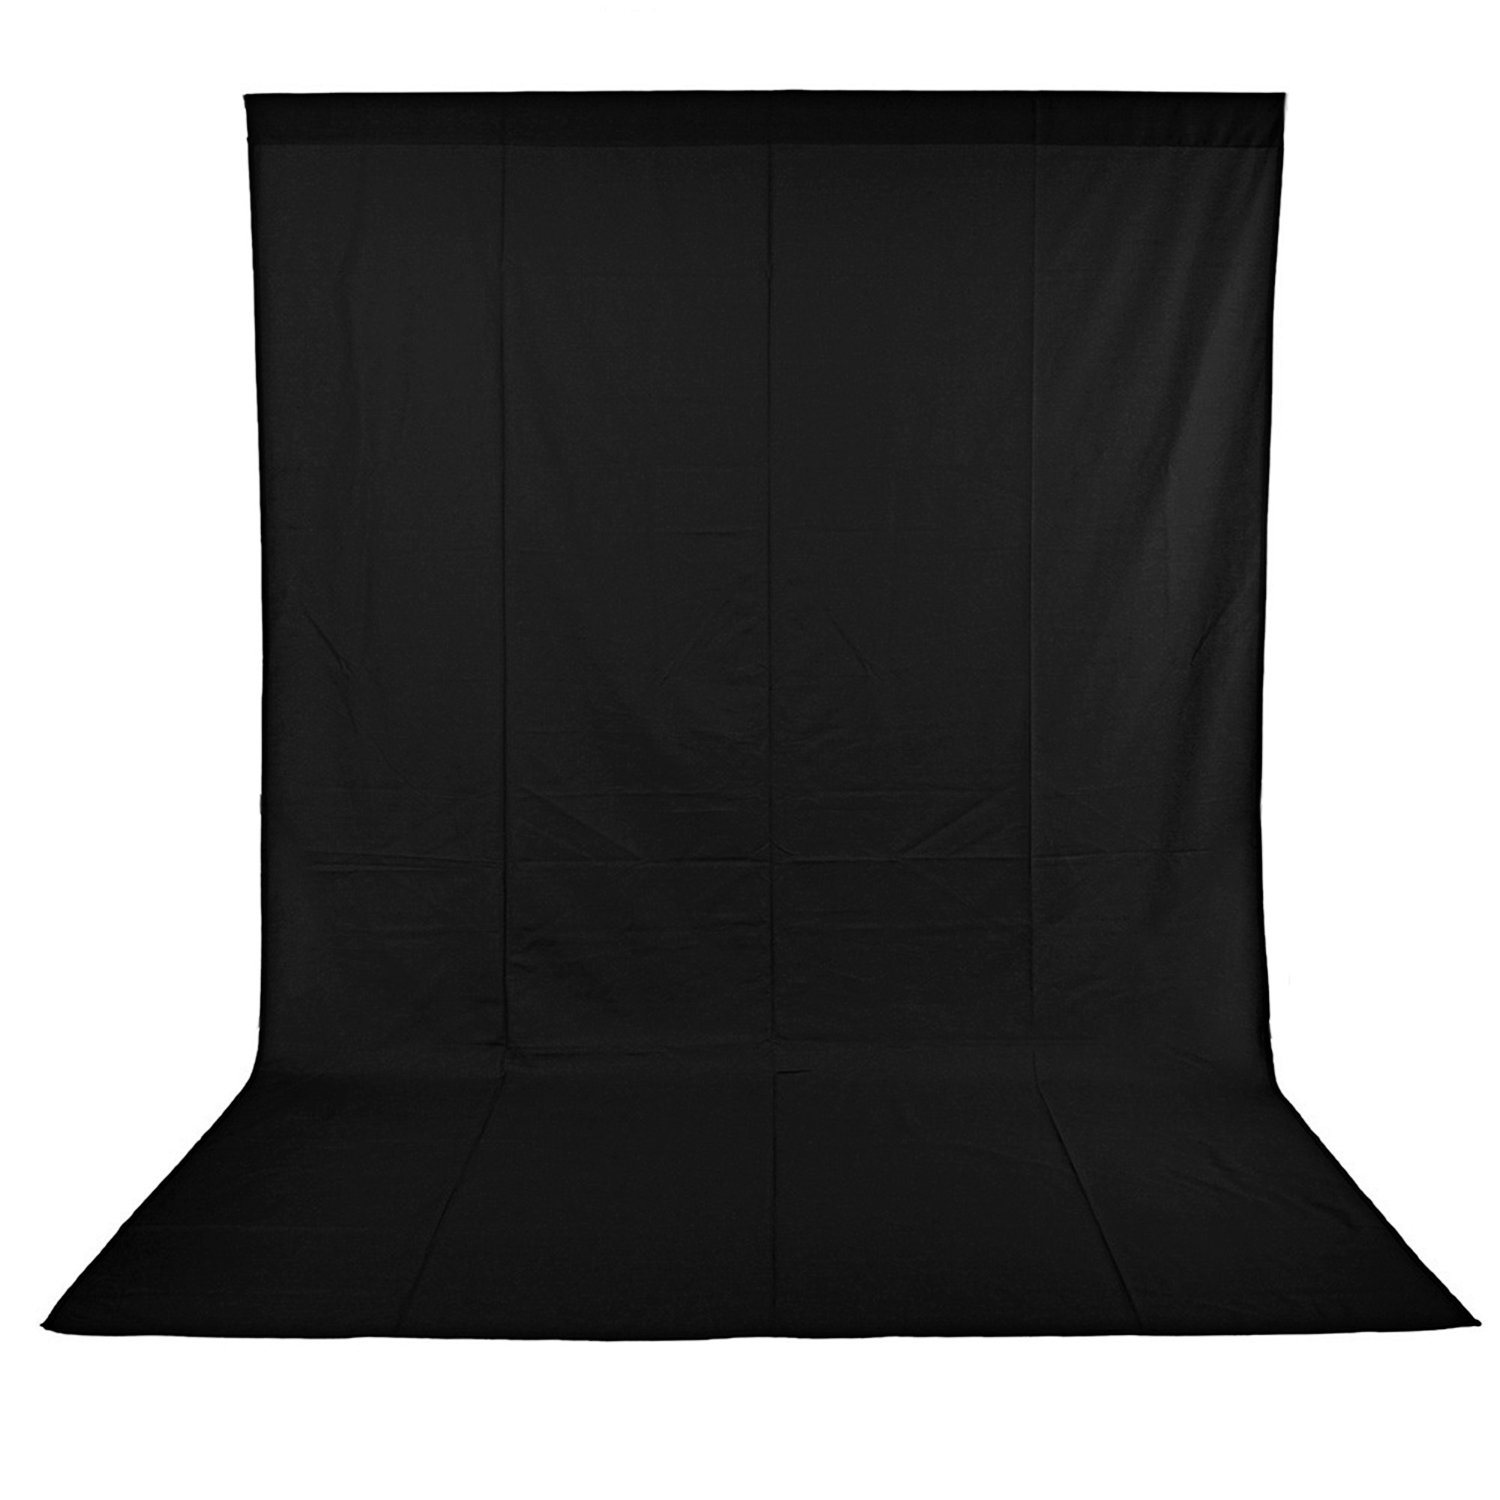 Neewer 10 x 20FT / 3 x 6M PRO Photo Studio 100% Pure Muslin Collapsible Backdrop Background for Photography,Video and Televison (Background ONLY) - BLACK by Neewer